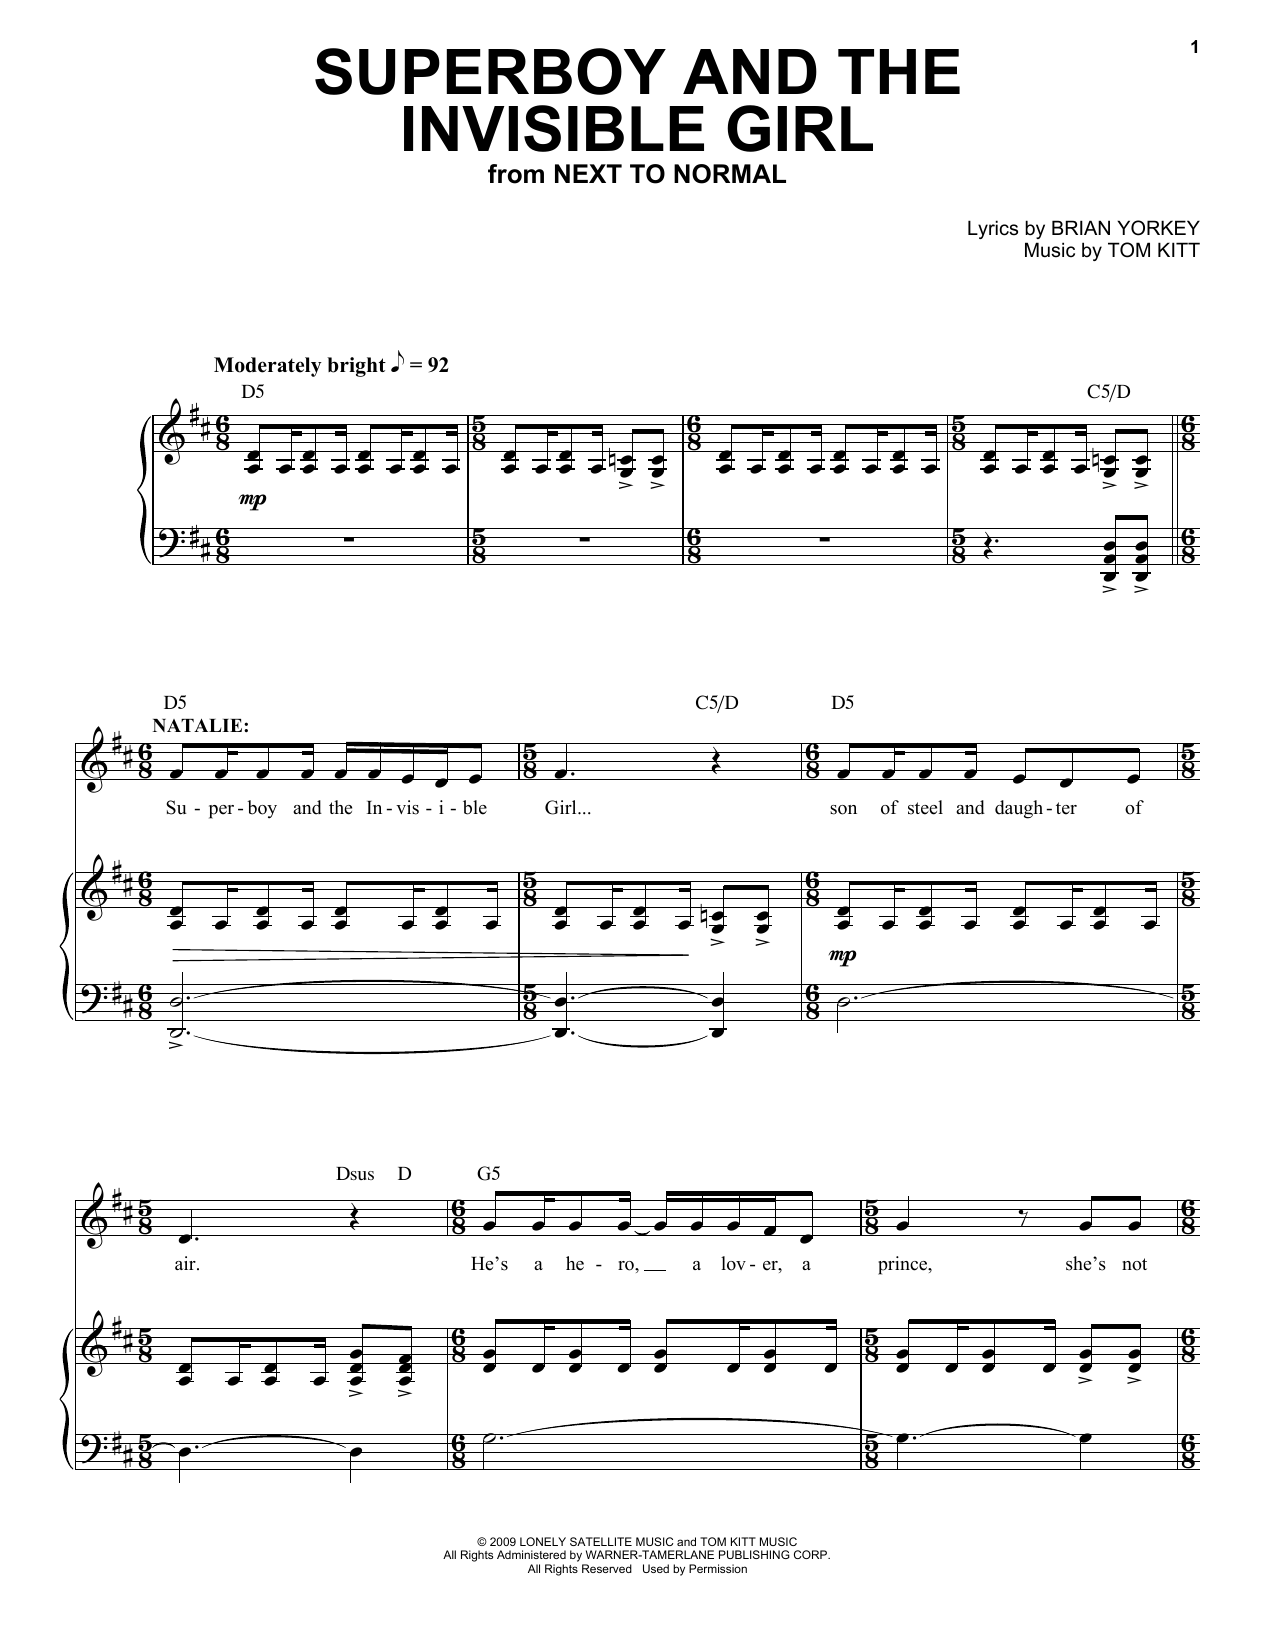 Download Aaron Tveit 'Superboy And The Invisible Girl (from Next to Normal)' Digital Sheet Music Notes & Chords and start playing in minutes